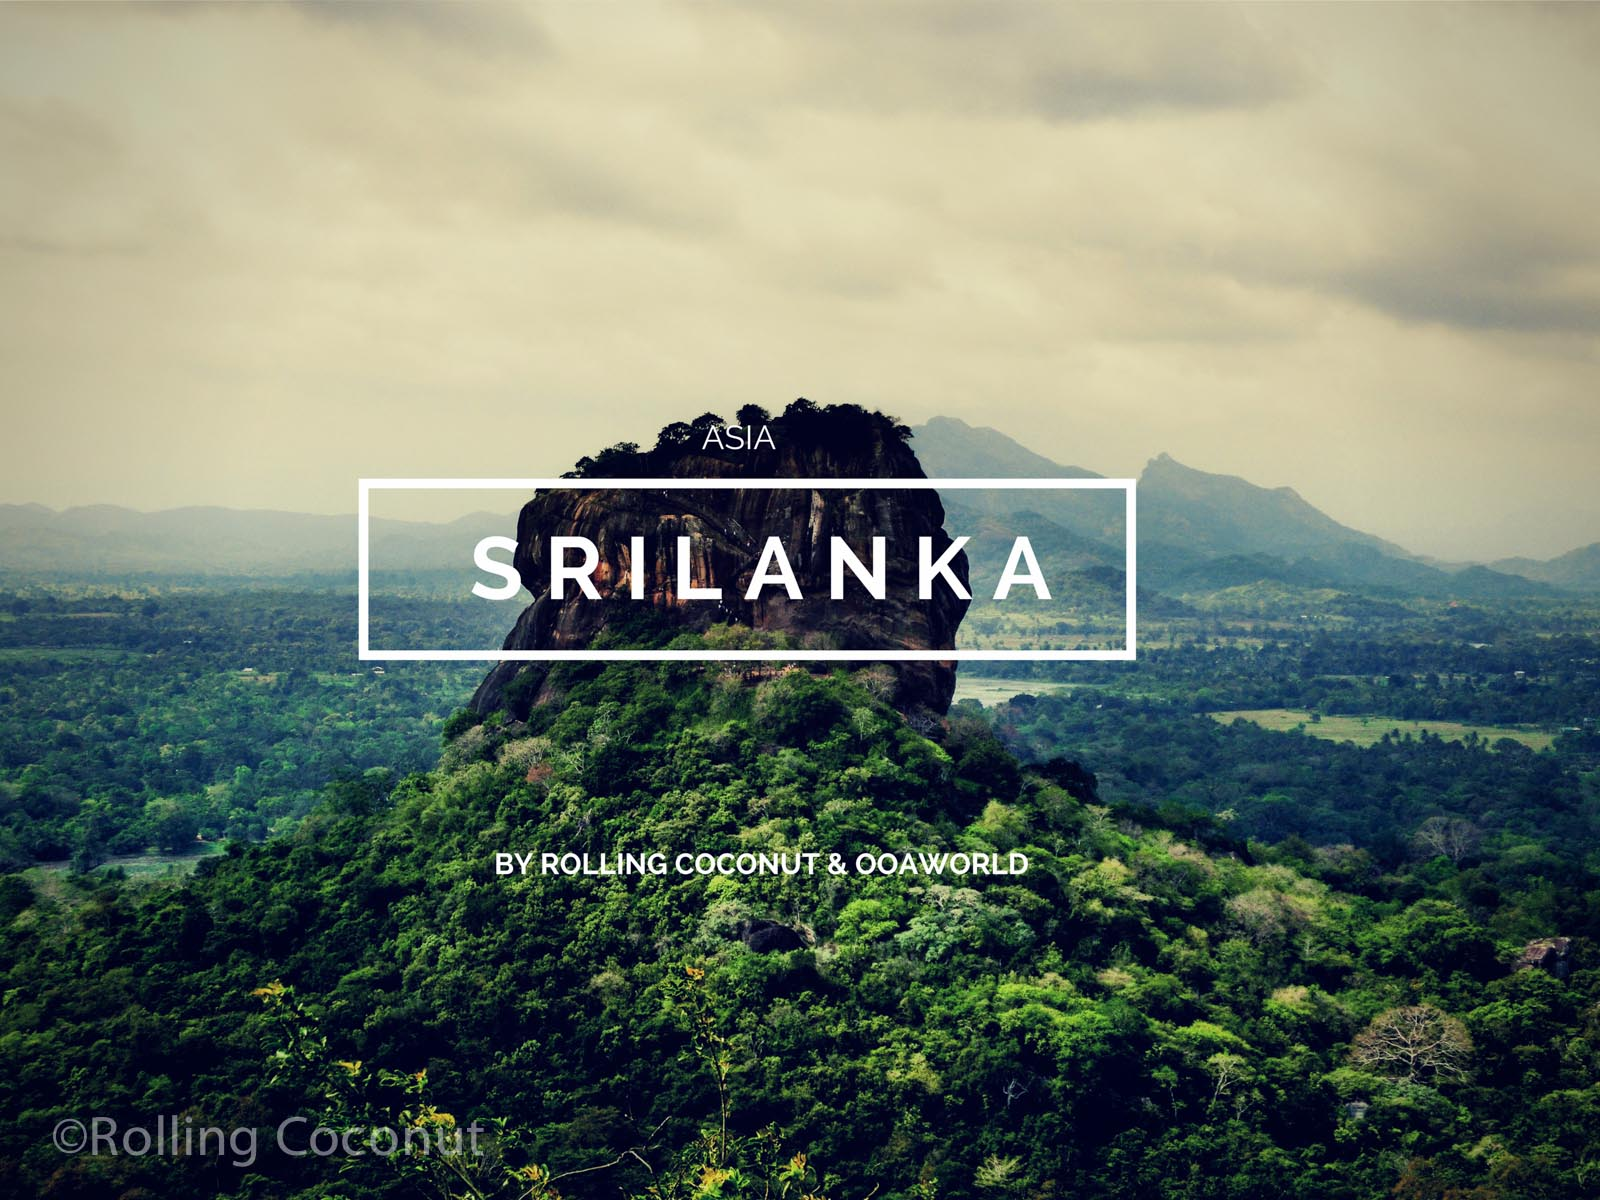 Sri Lanka Travel Ooaworld Rolling Coconut Photo Ooaworld